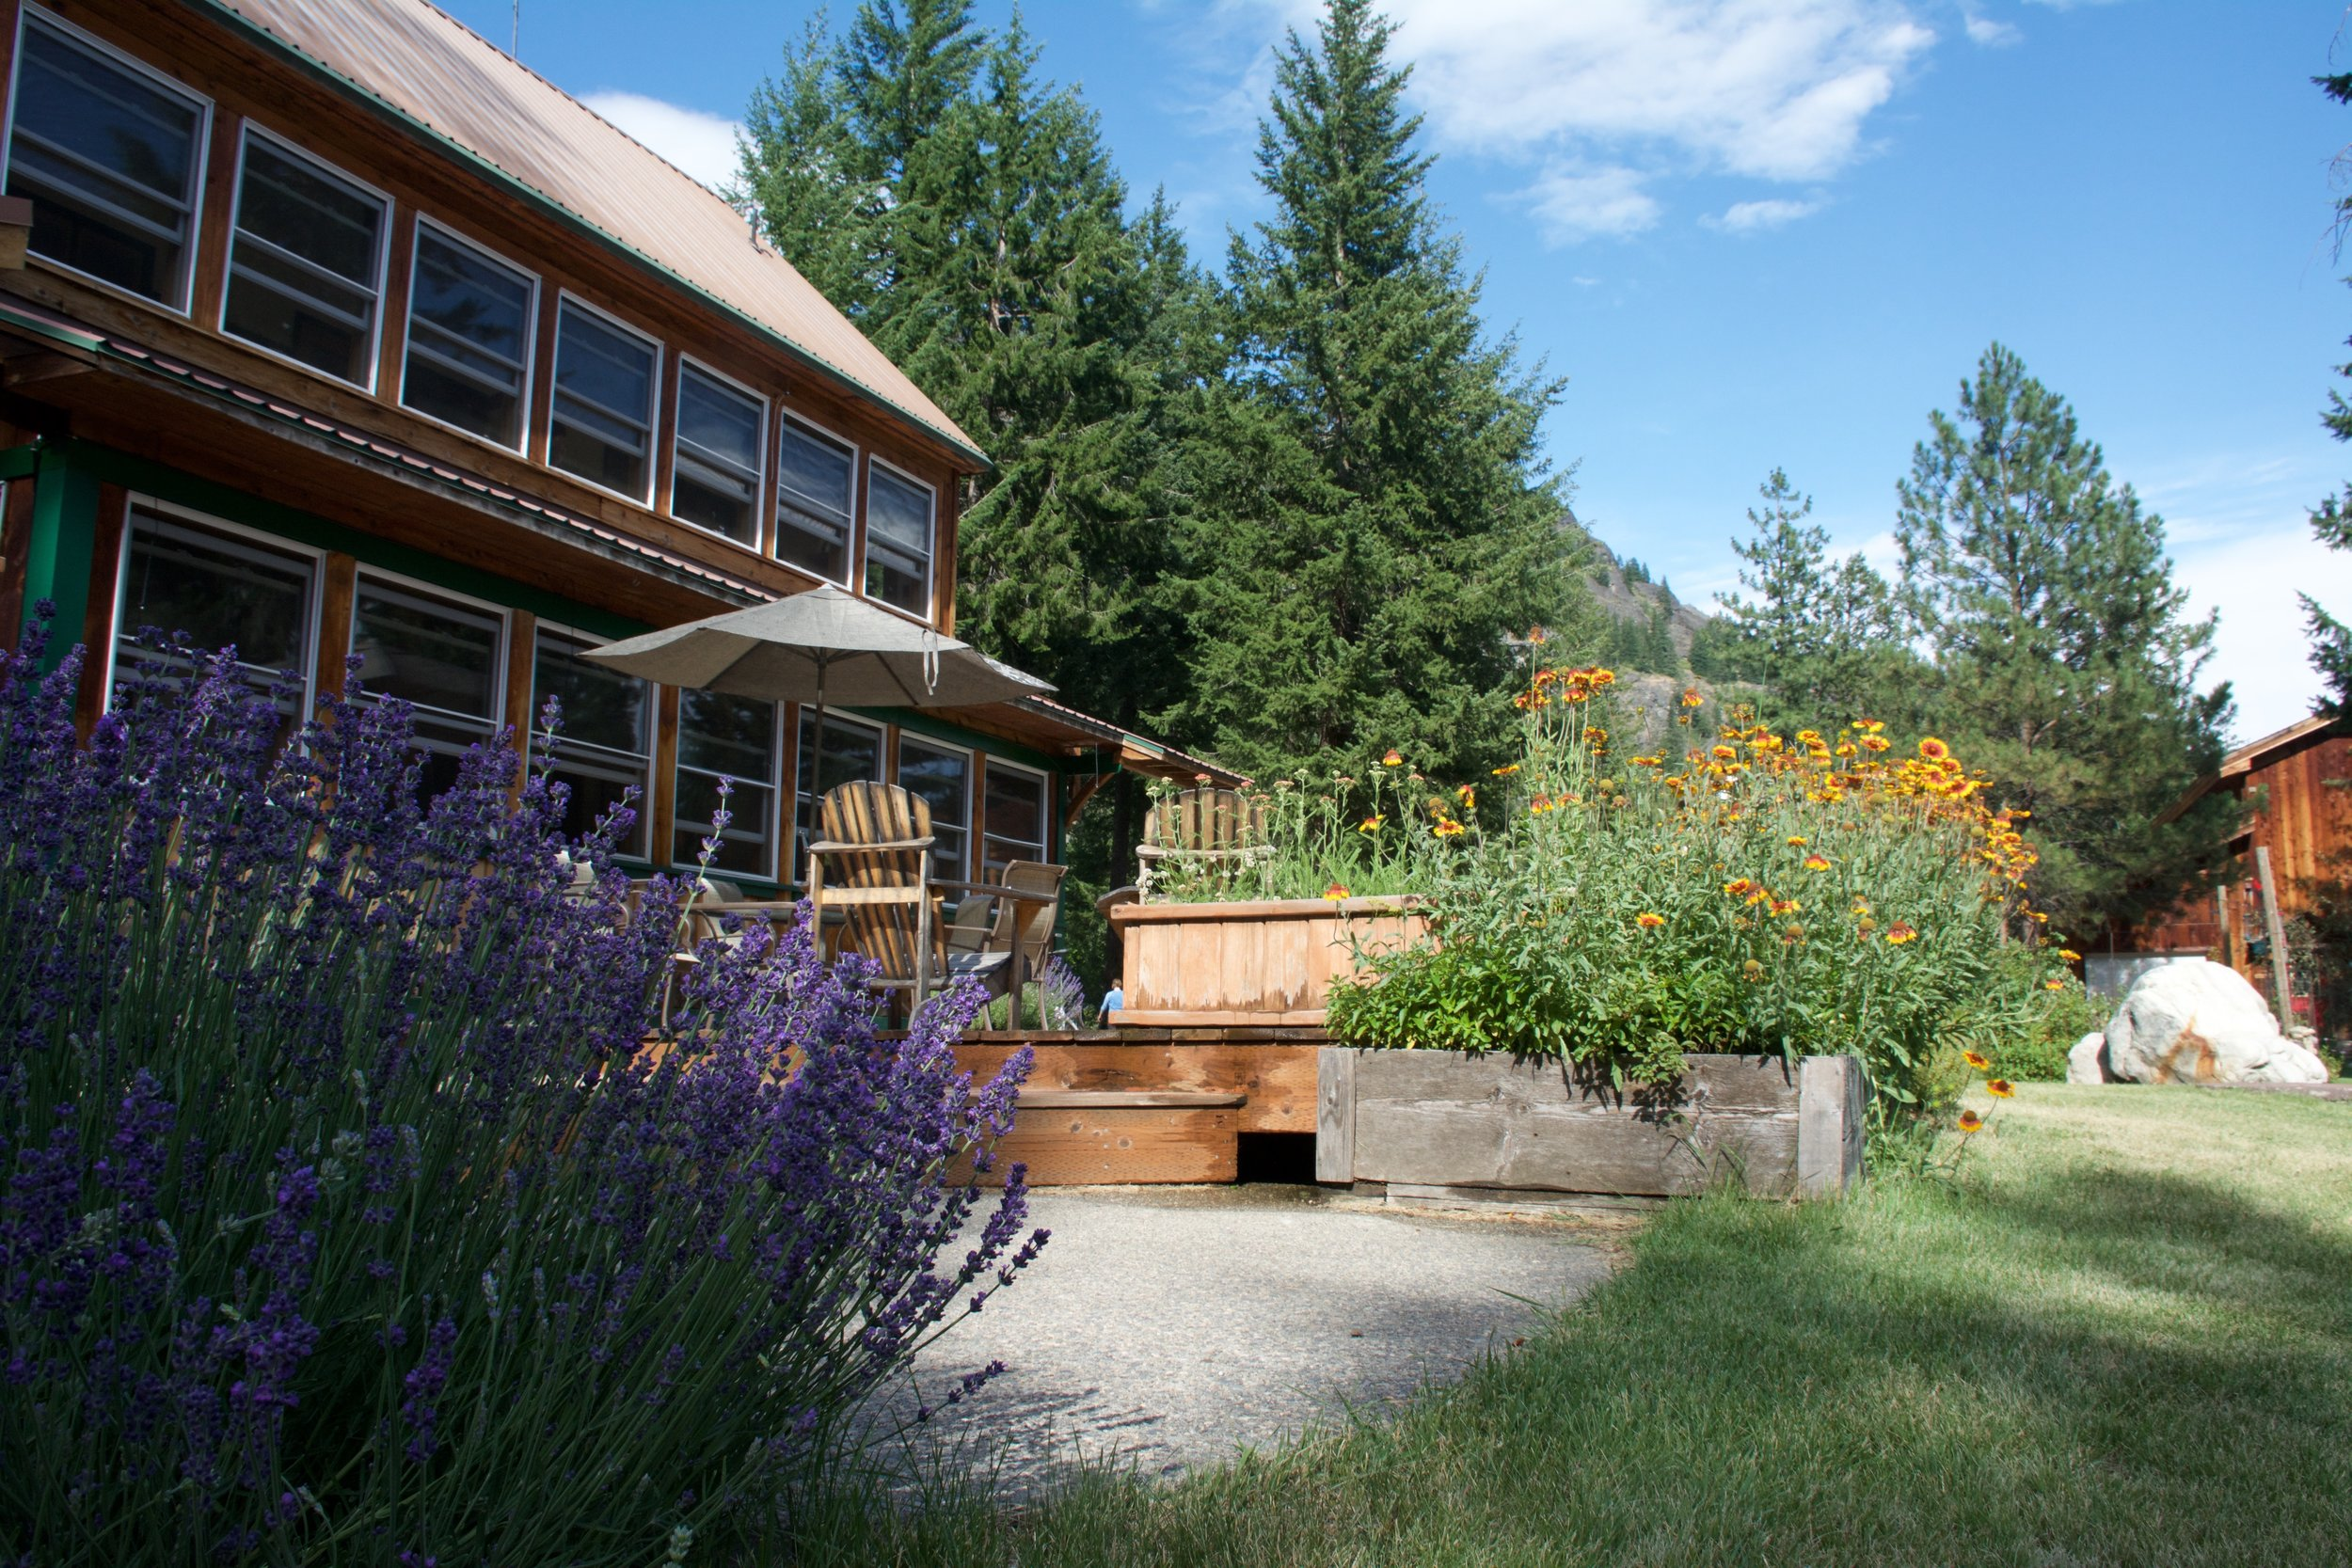 The main lodge & garden